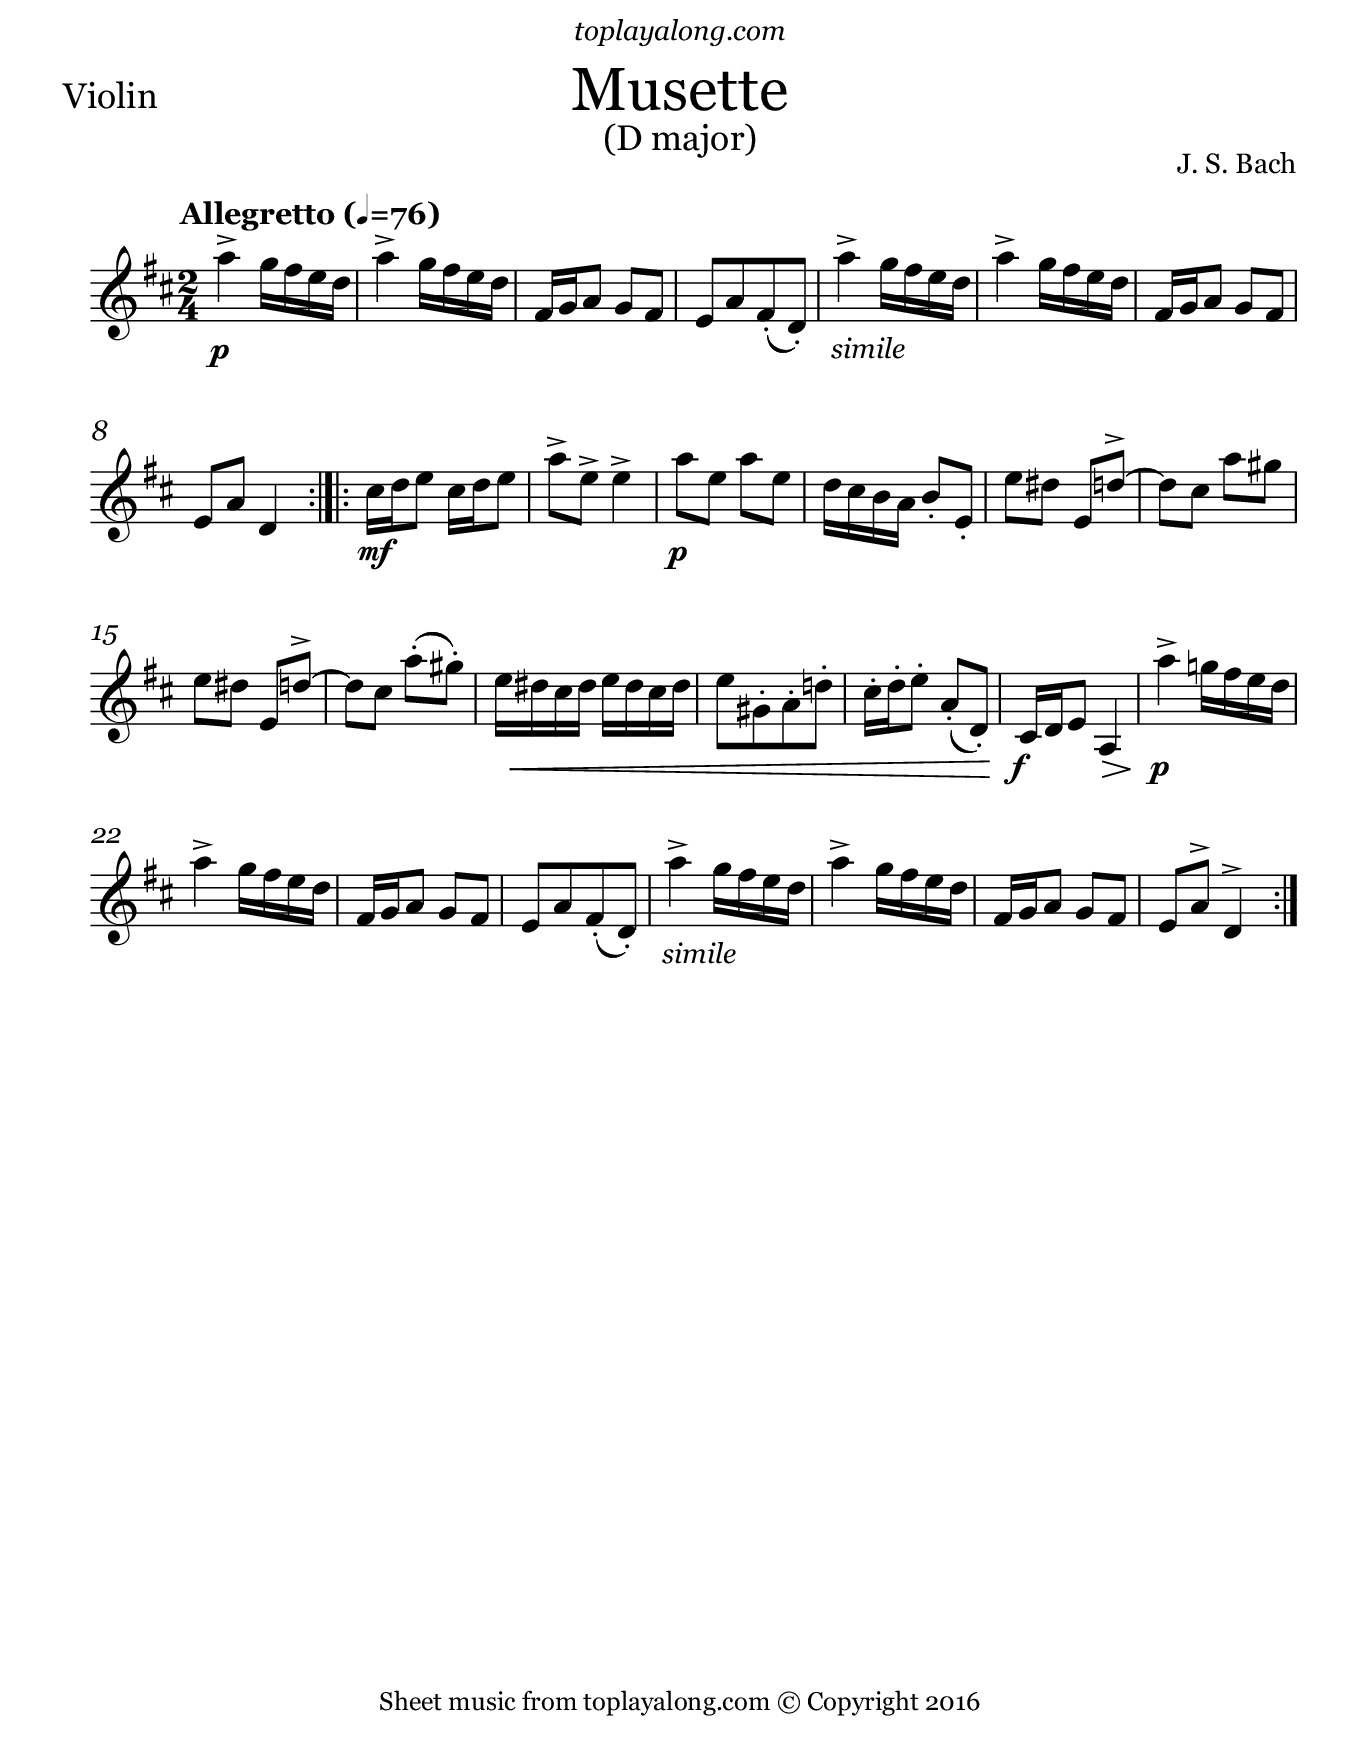 Musette in D major by J. S. Bach. Sheet music for Violin, page 1.